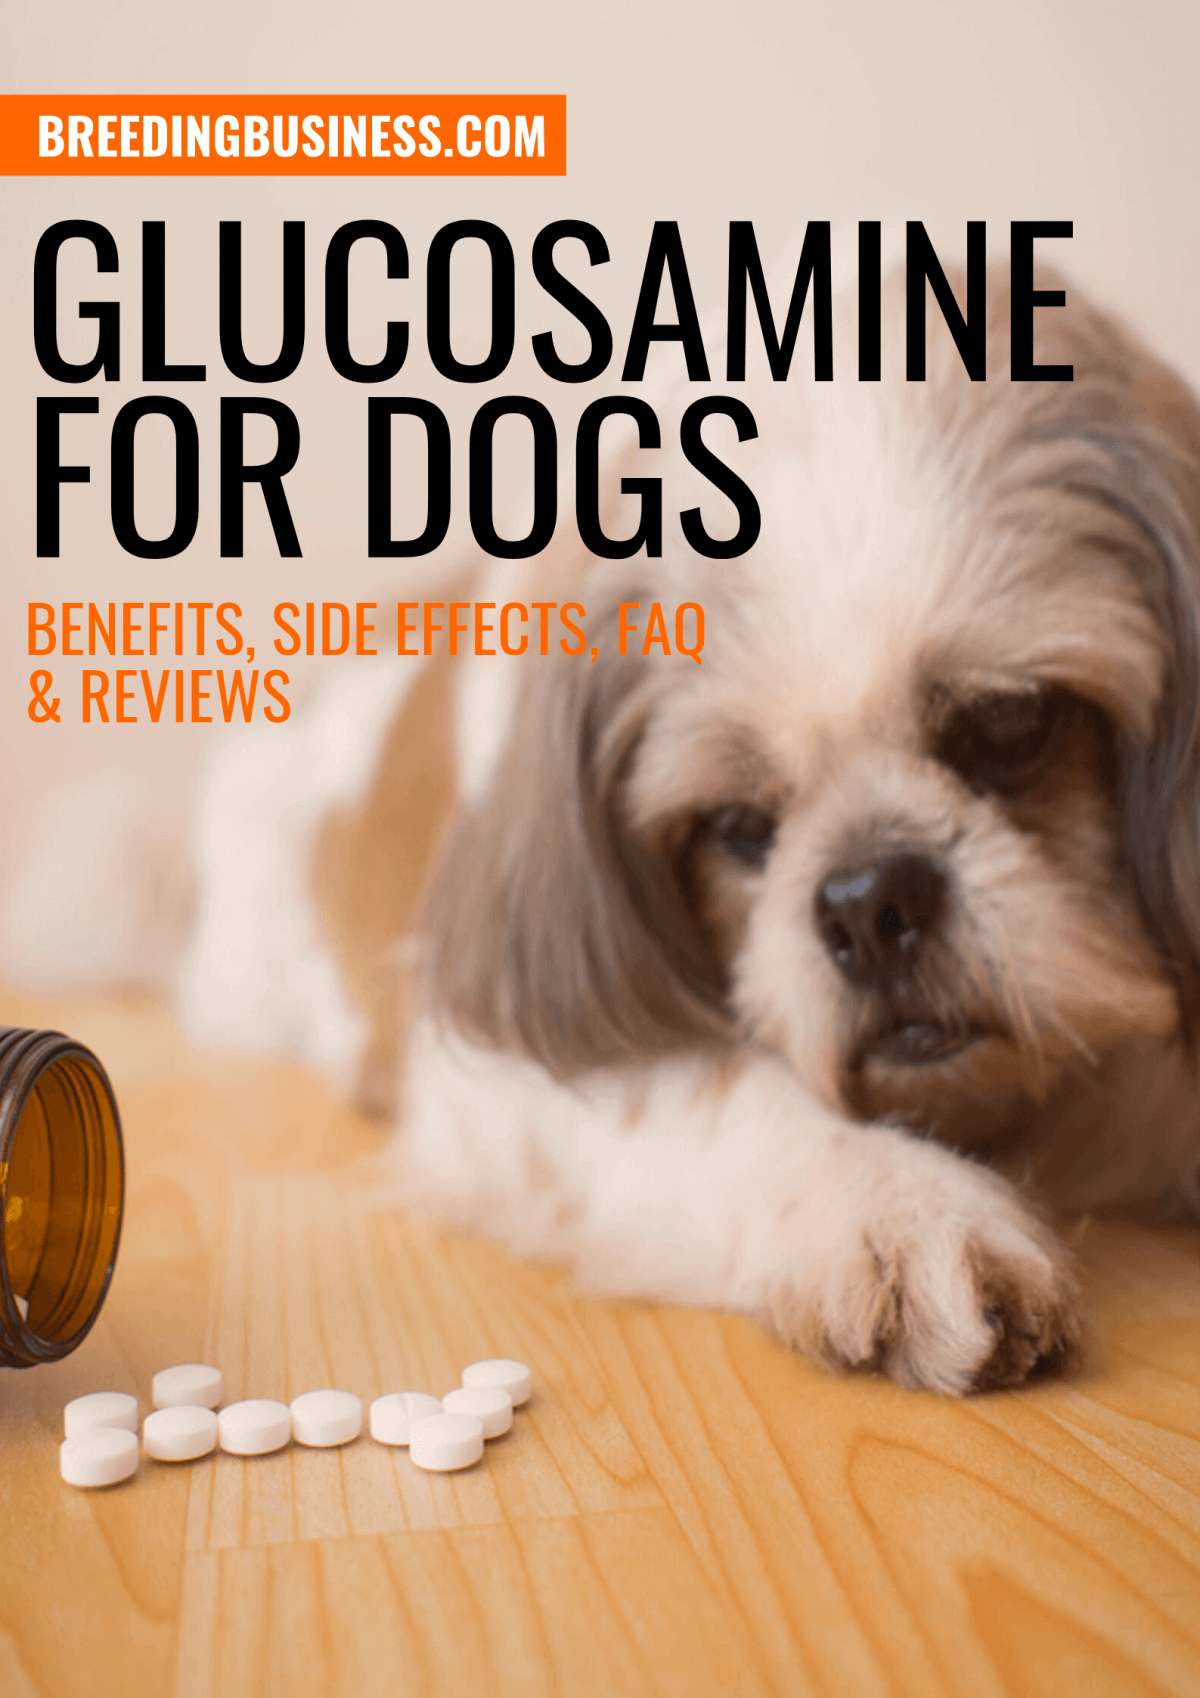 Guide: Glucosamine for Dogs